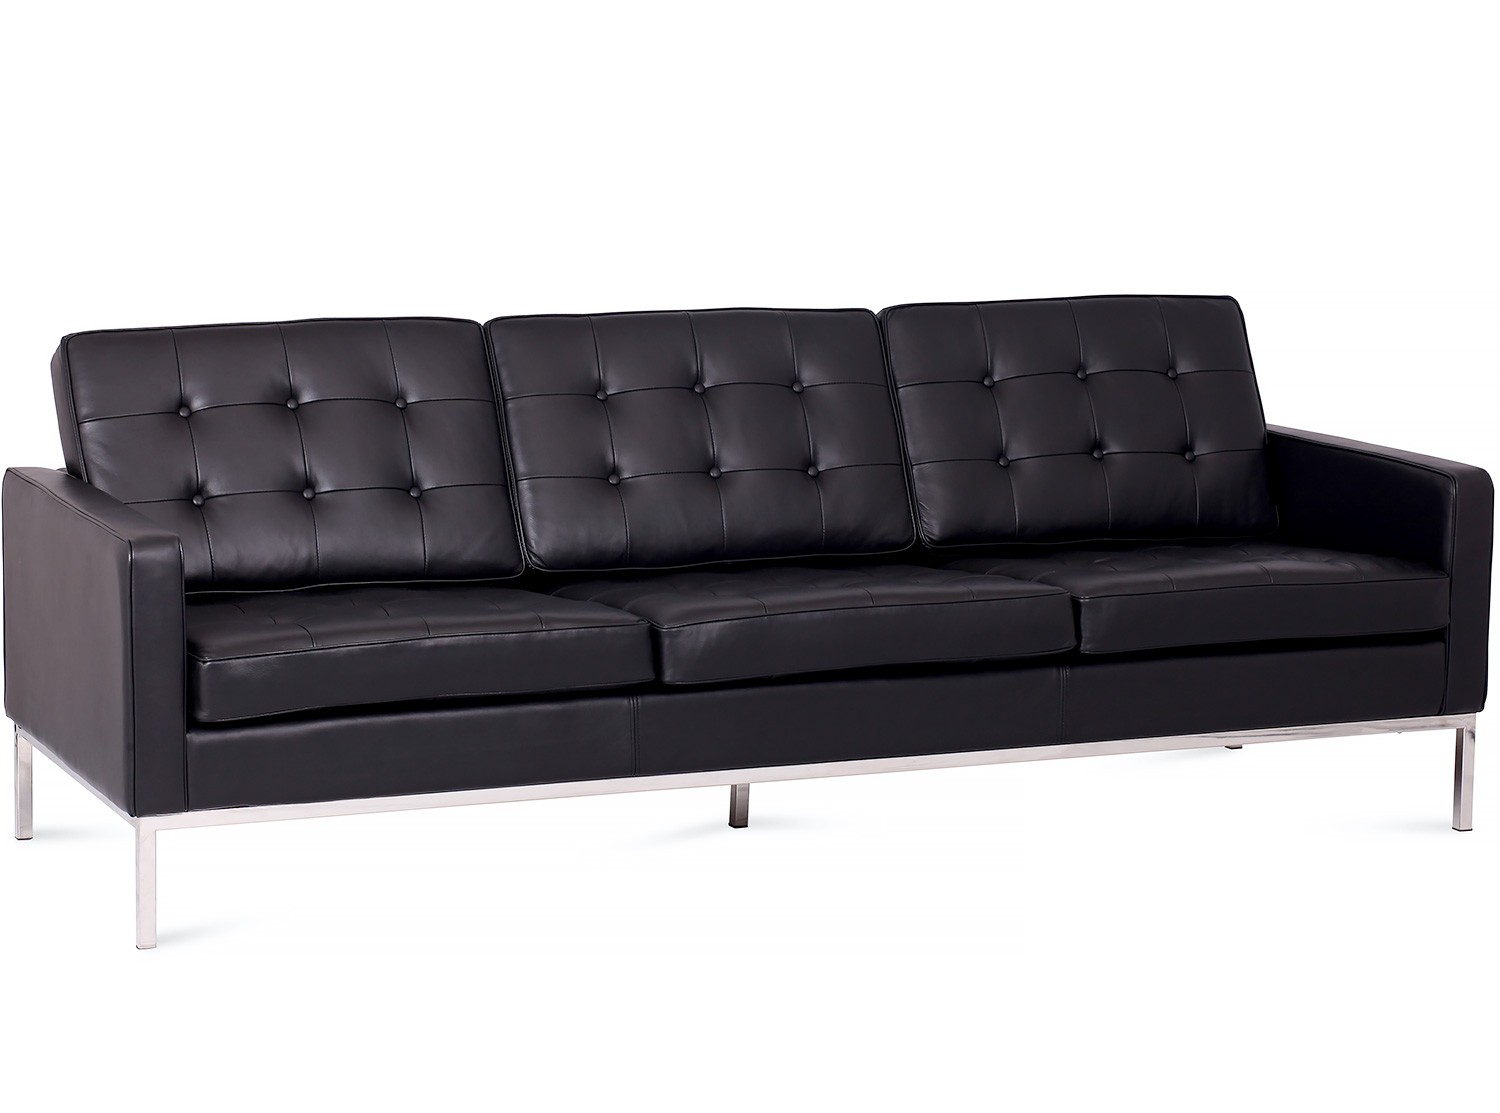 Knoll Couch Florence Knoll Sofa 3 Seater Leather Platinum Replica